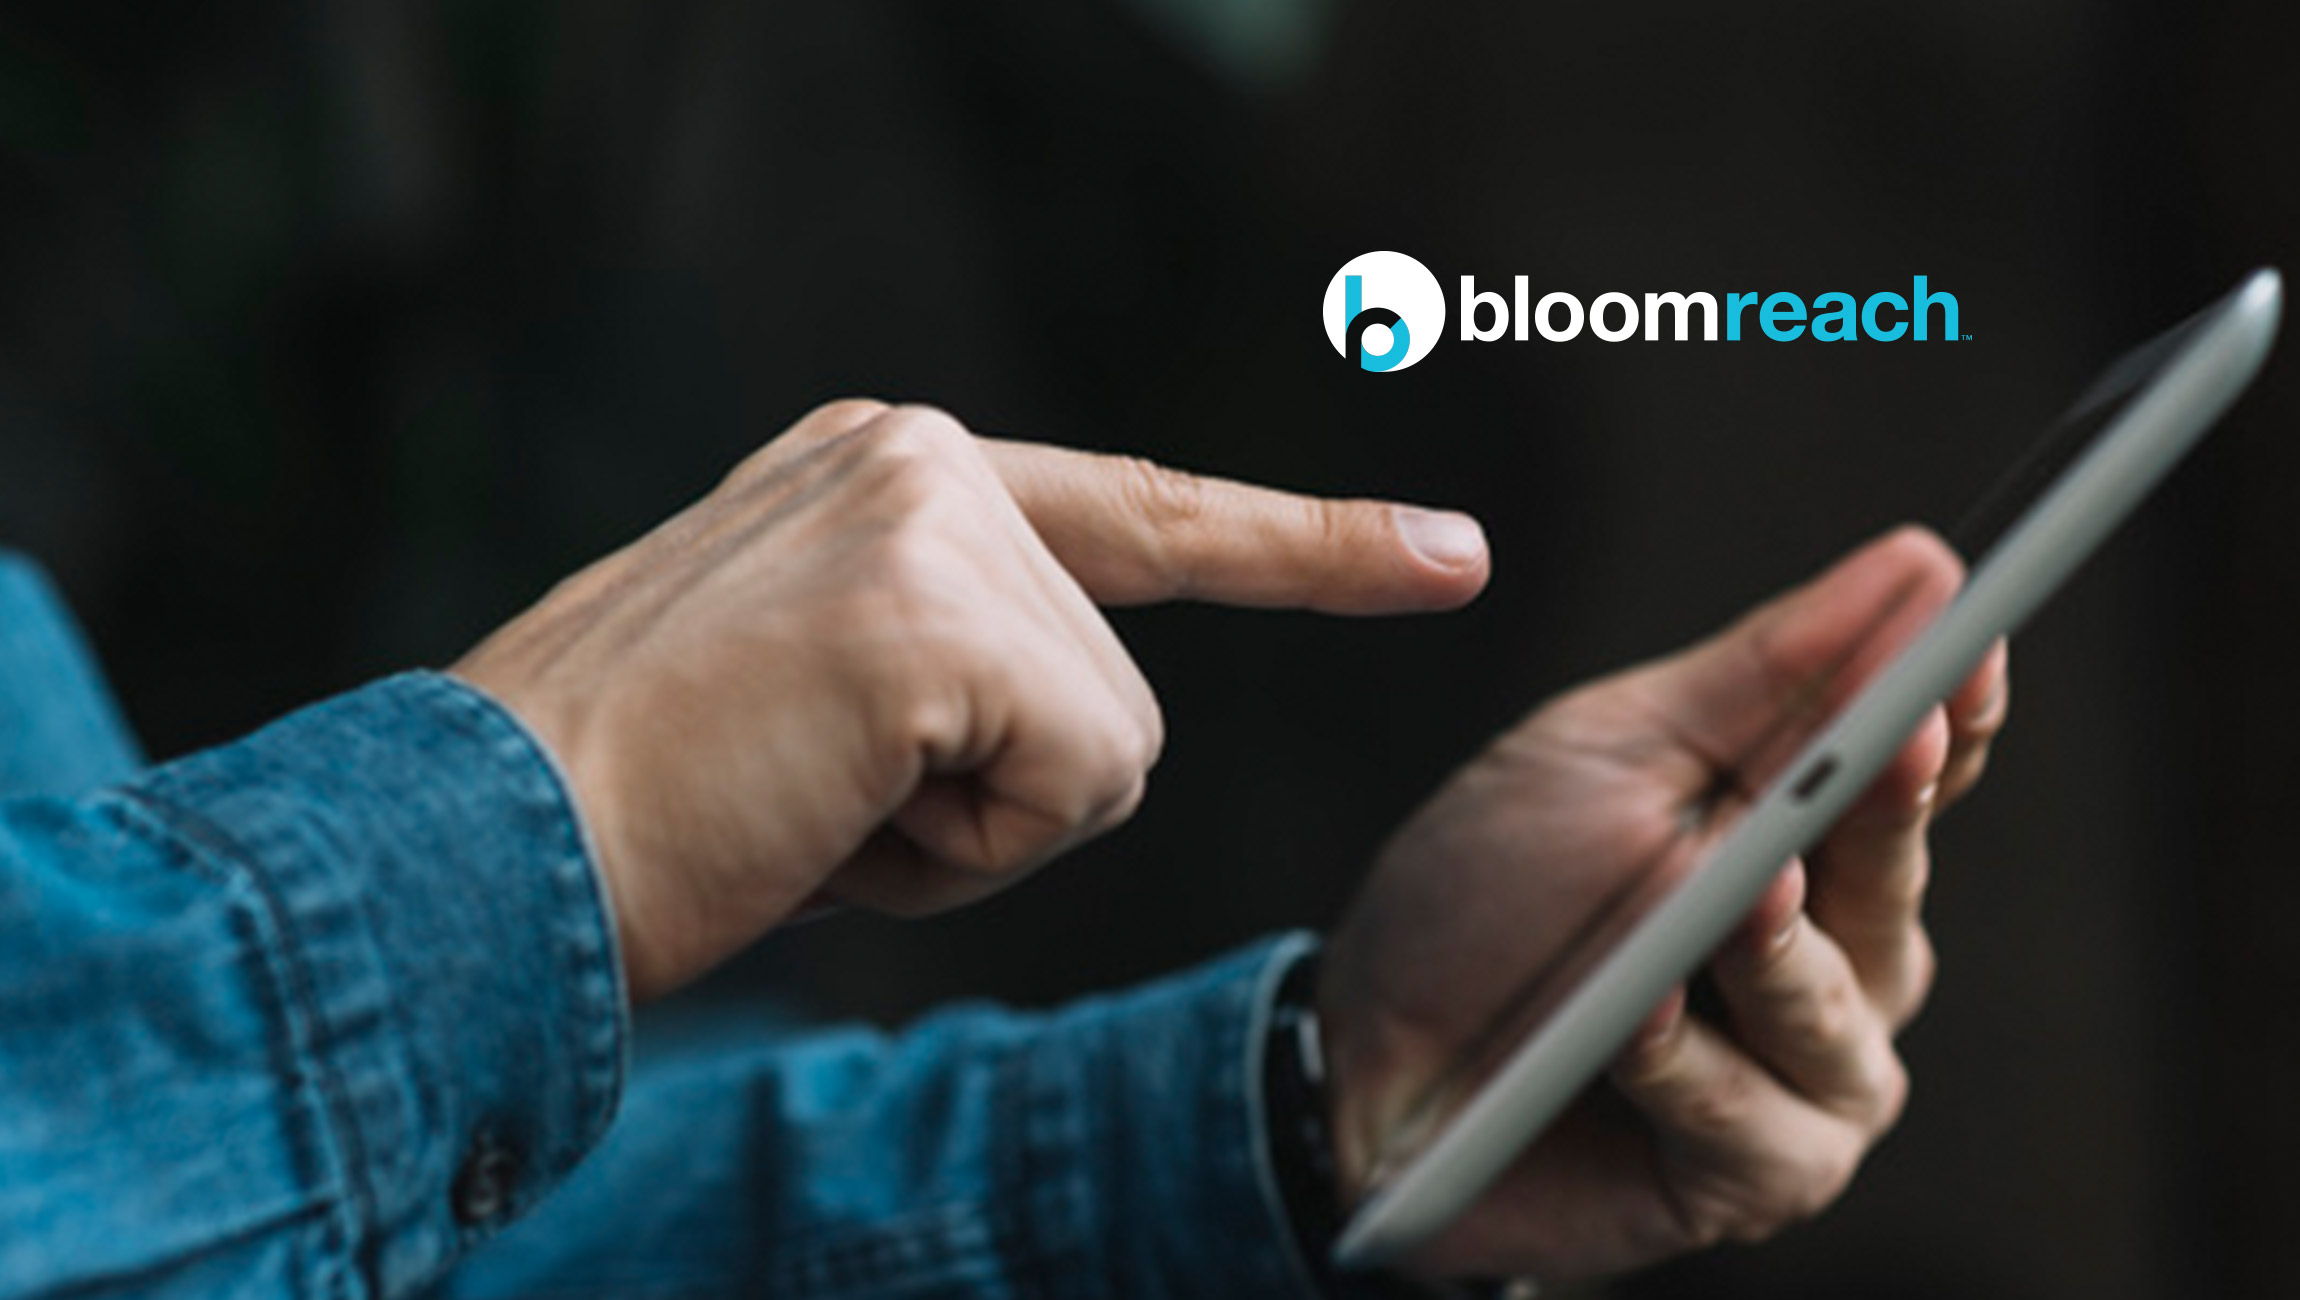 Bloomreach Announces New 'Commerce Experience Accelerator' for SAP Commerce Cloud